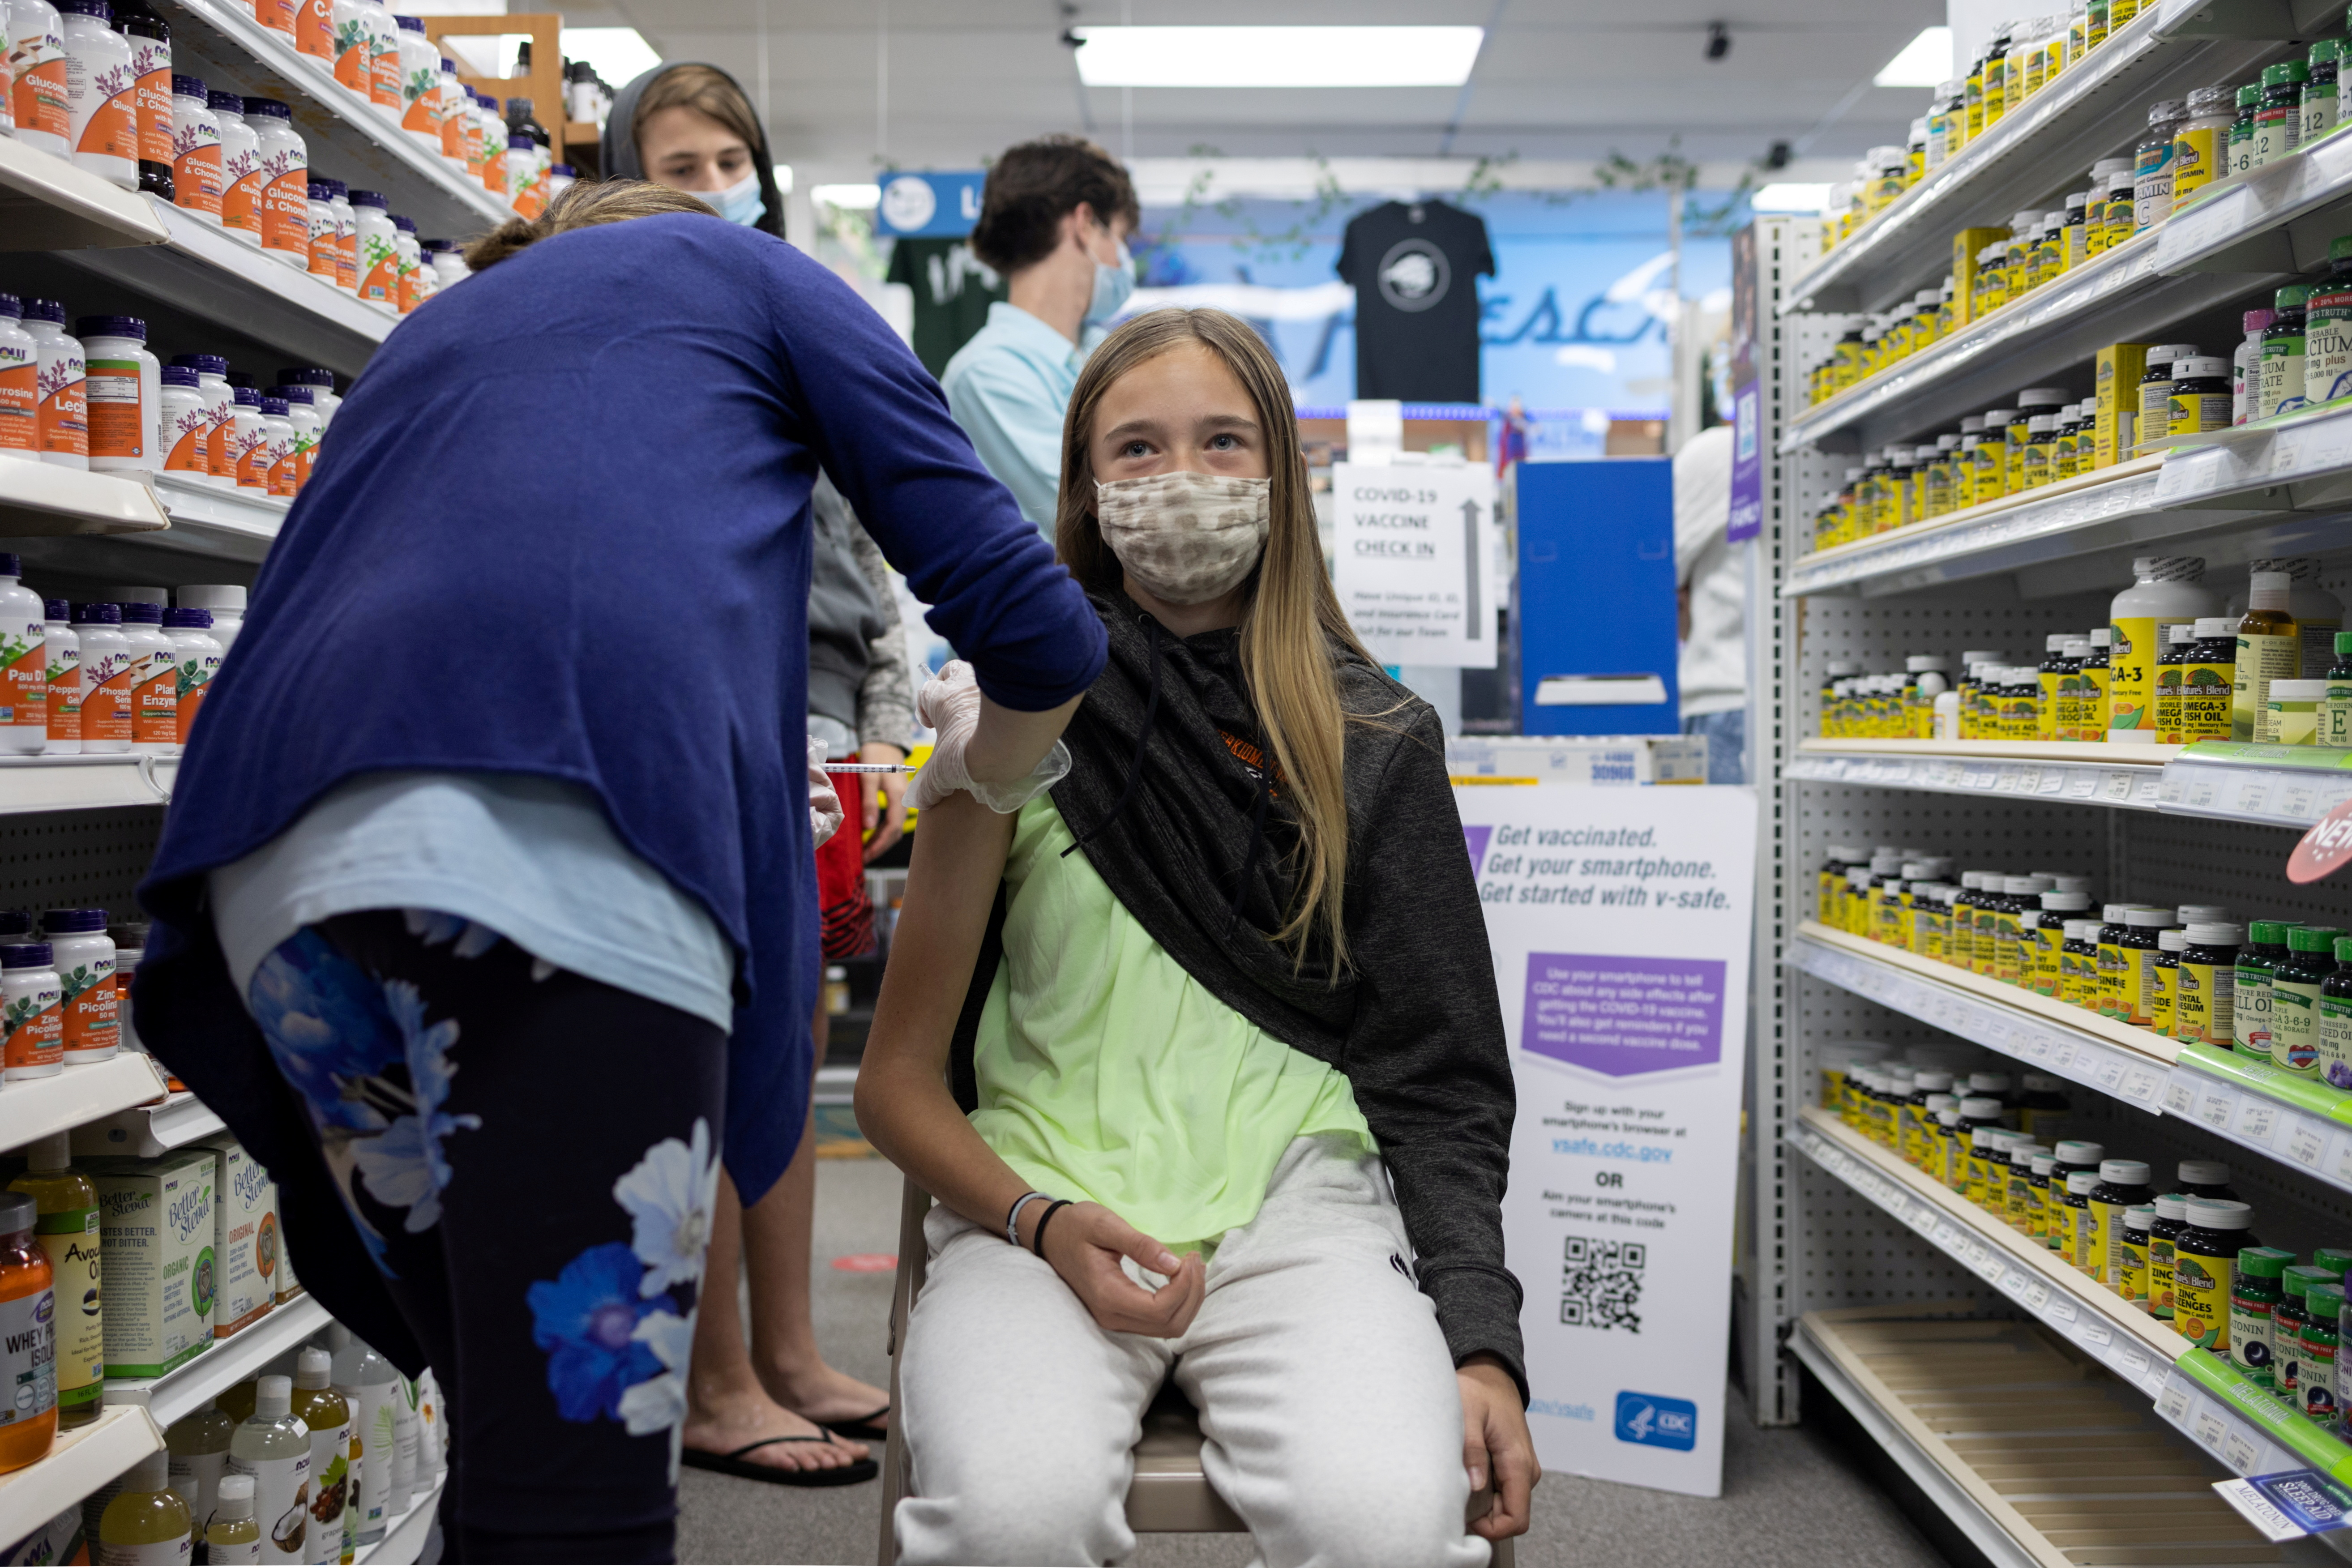 Abby Oplinger, 13, receives the Pfizer-BioNTech coronavirus disease (COVID-19) vaccine after Pennsylvania authorized the vaccine for those over 12-years-old at Skippack Pharmacy in Schwenksville, Pennsylvania, U.S., May 12, 2021. REUTERS/Hannah Beier/File Photo